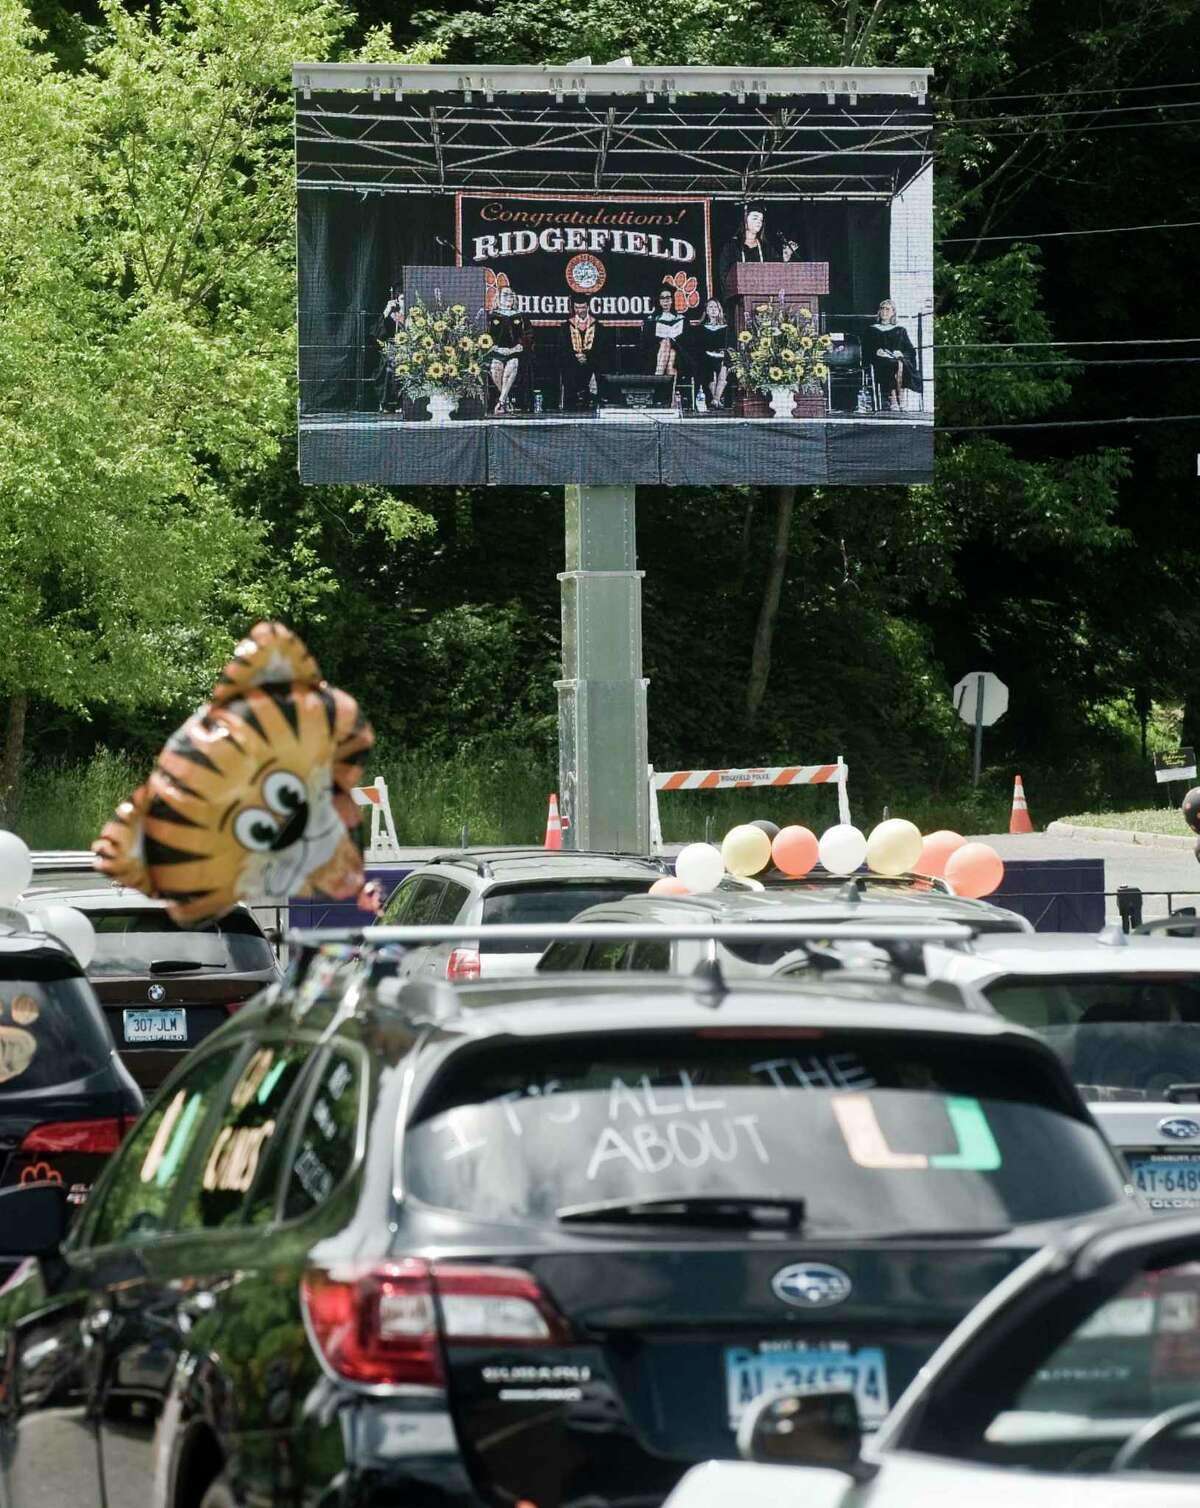 The 2020 Ridgefield High School graduation ceremony was broadcast on big screens in the school parking lot for graduates in their cars. Thursday, June 18, 2020.